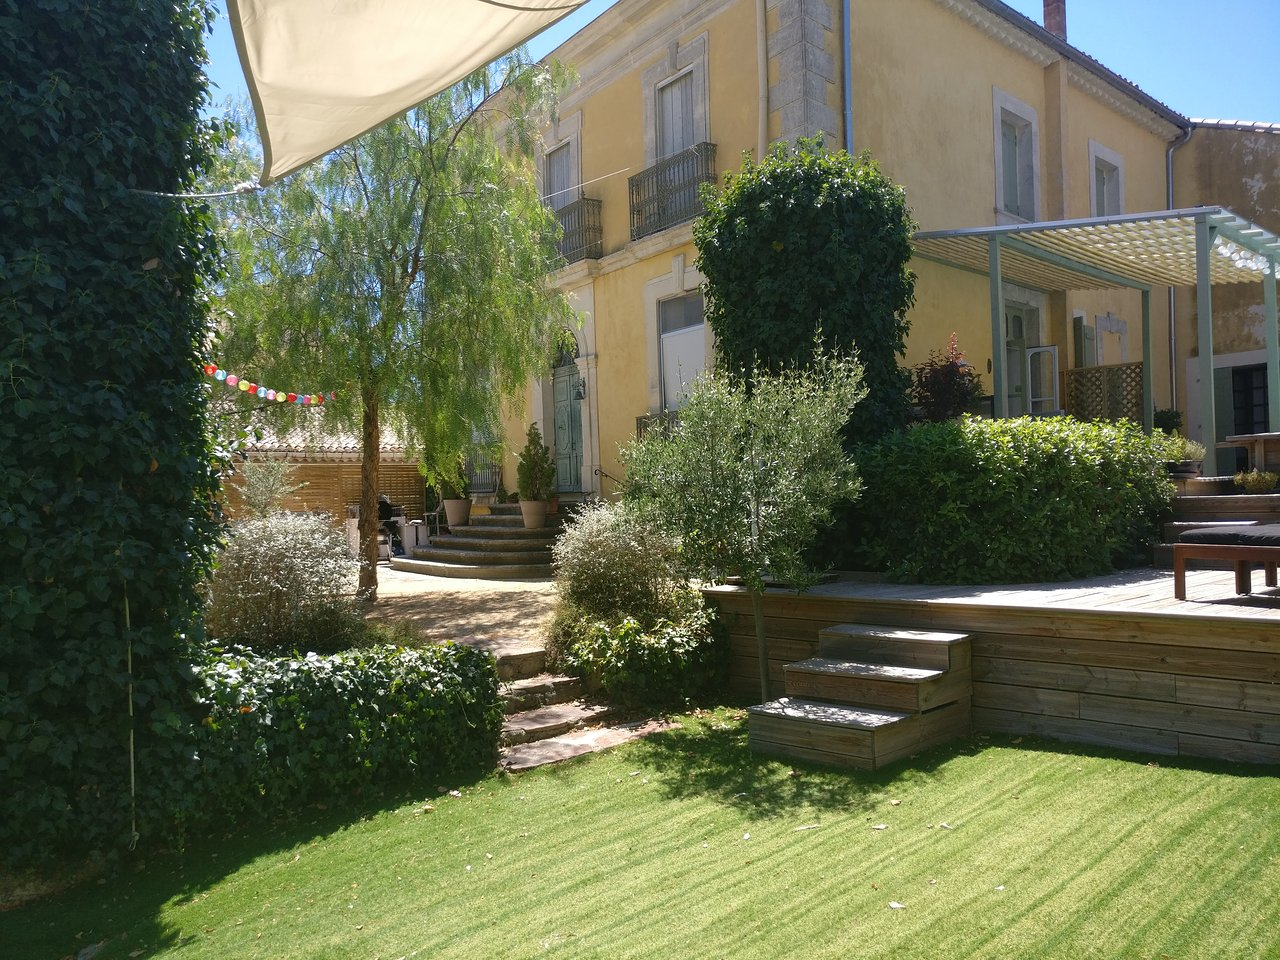 In And Out Beziers d'oc d'or $100 ($̶1̶1̶0̶) - updated 2020 prices & b&b